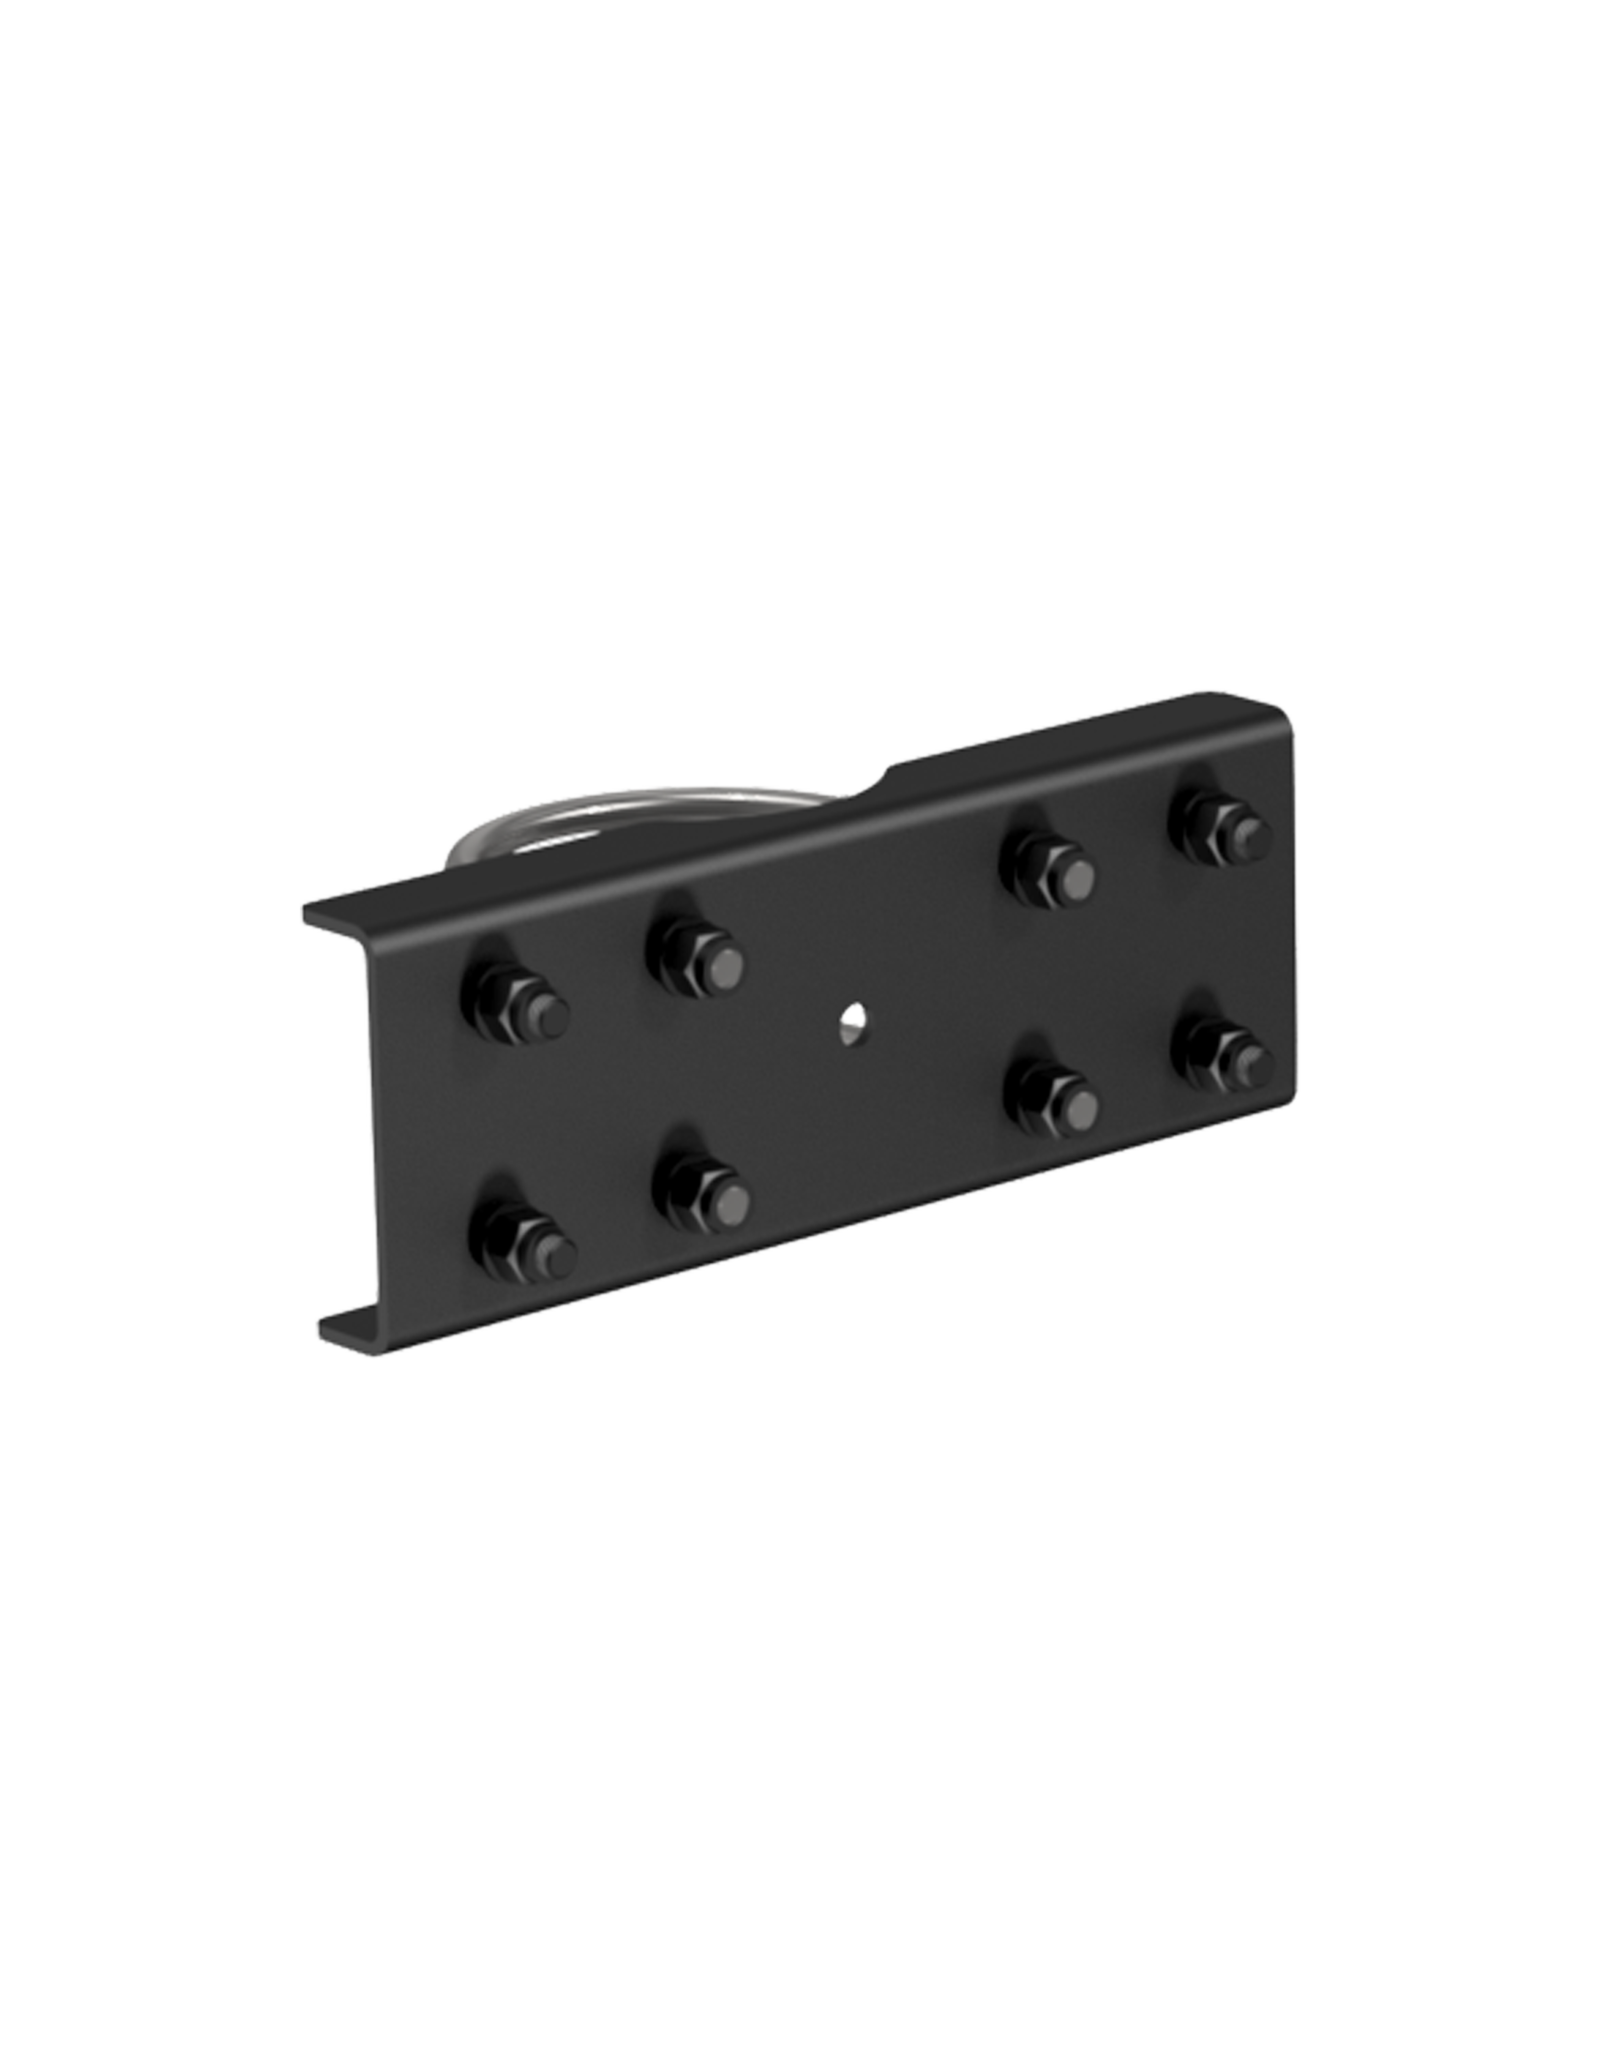 Audac Pole mount adapter set for MBK208MK2 and MBK212MK2 Black version